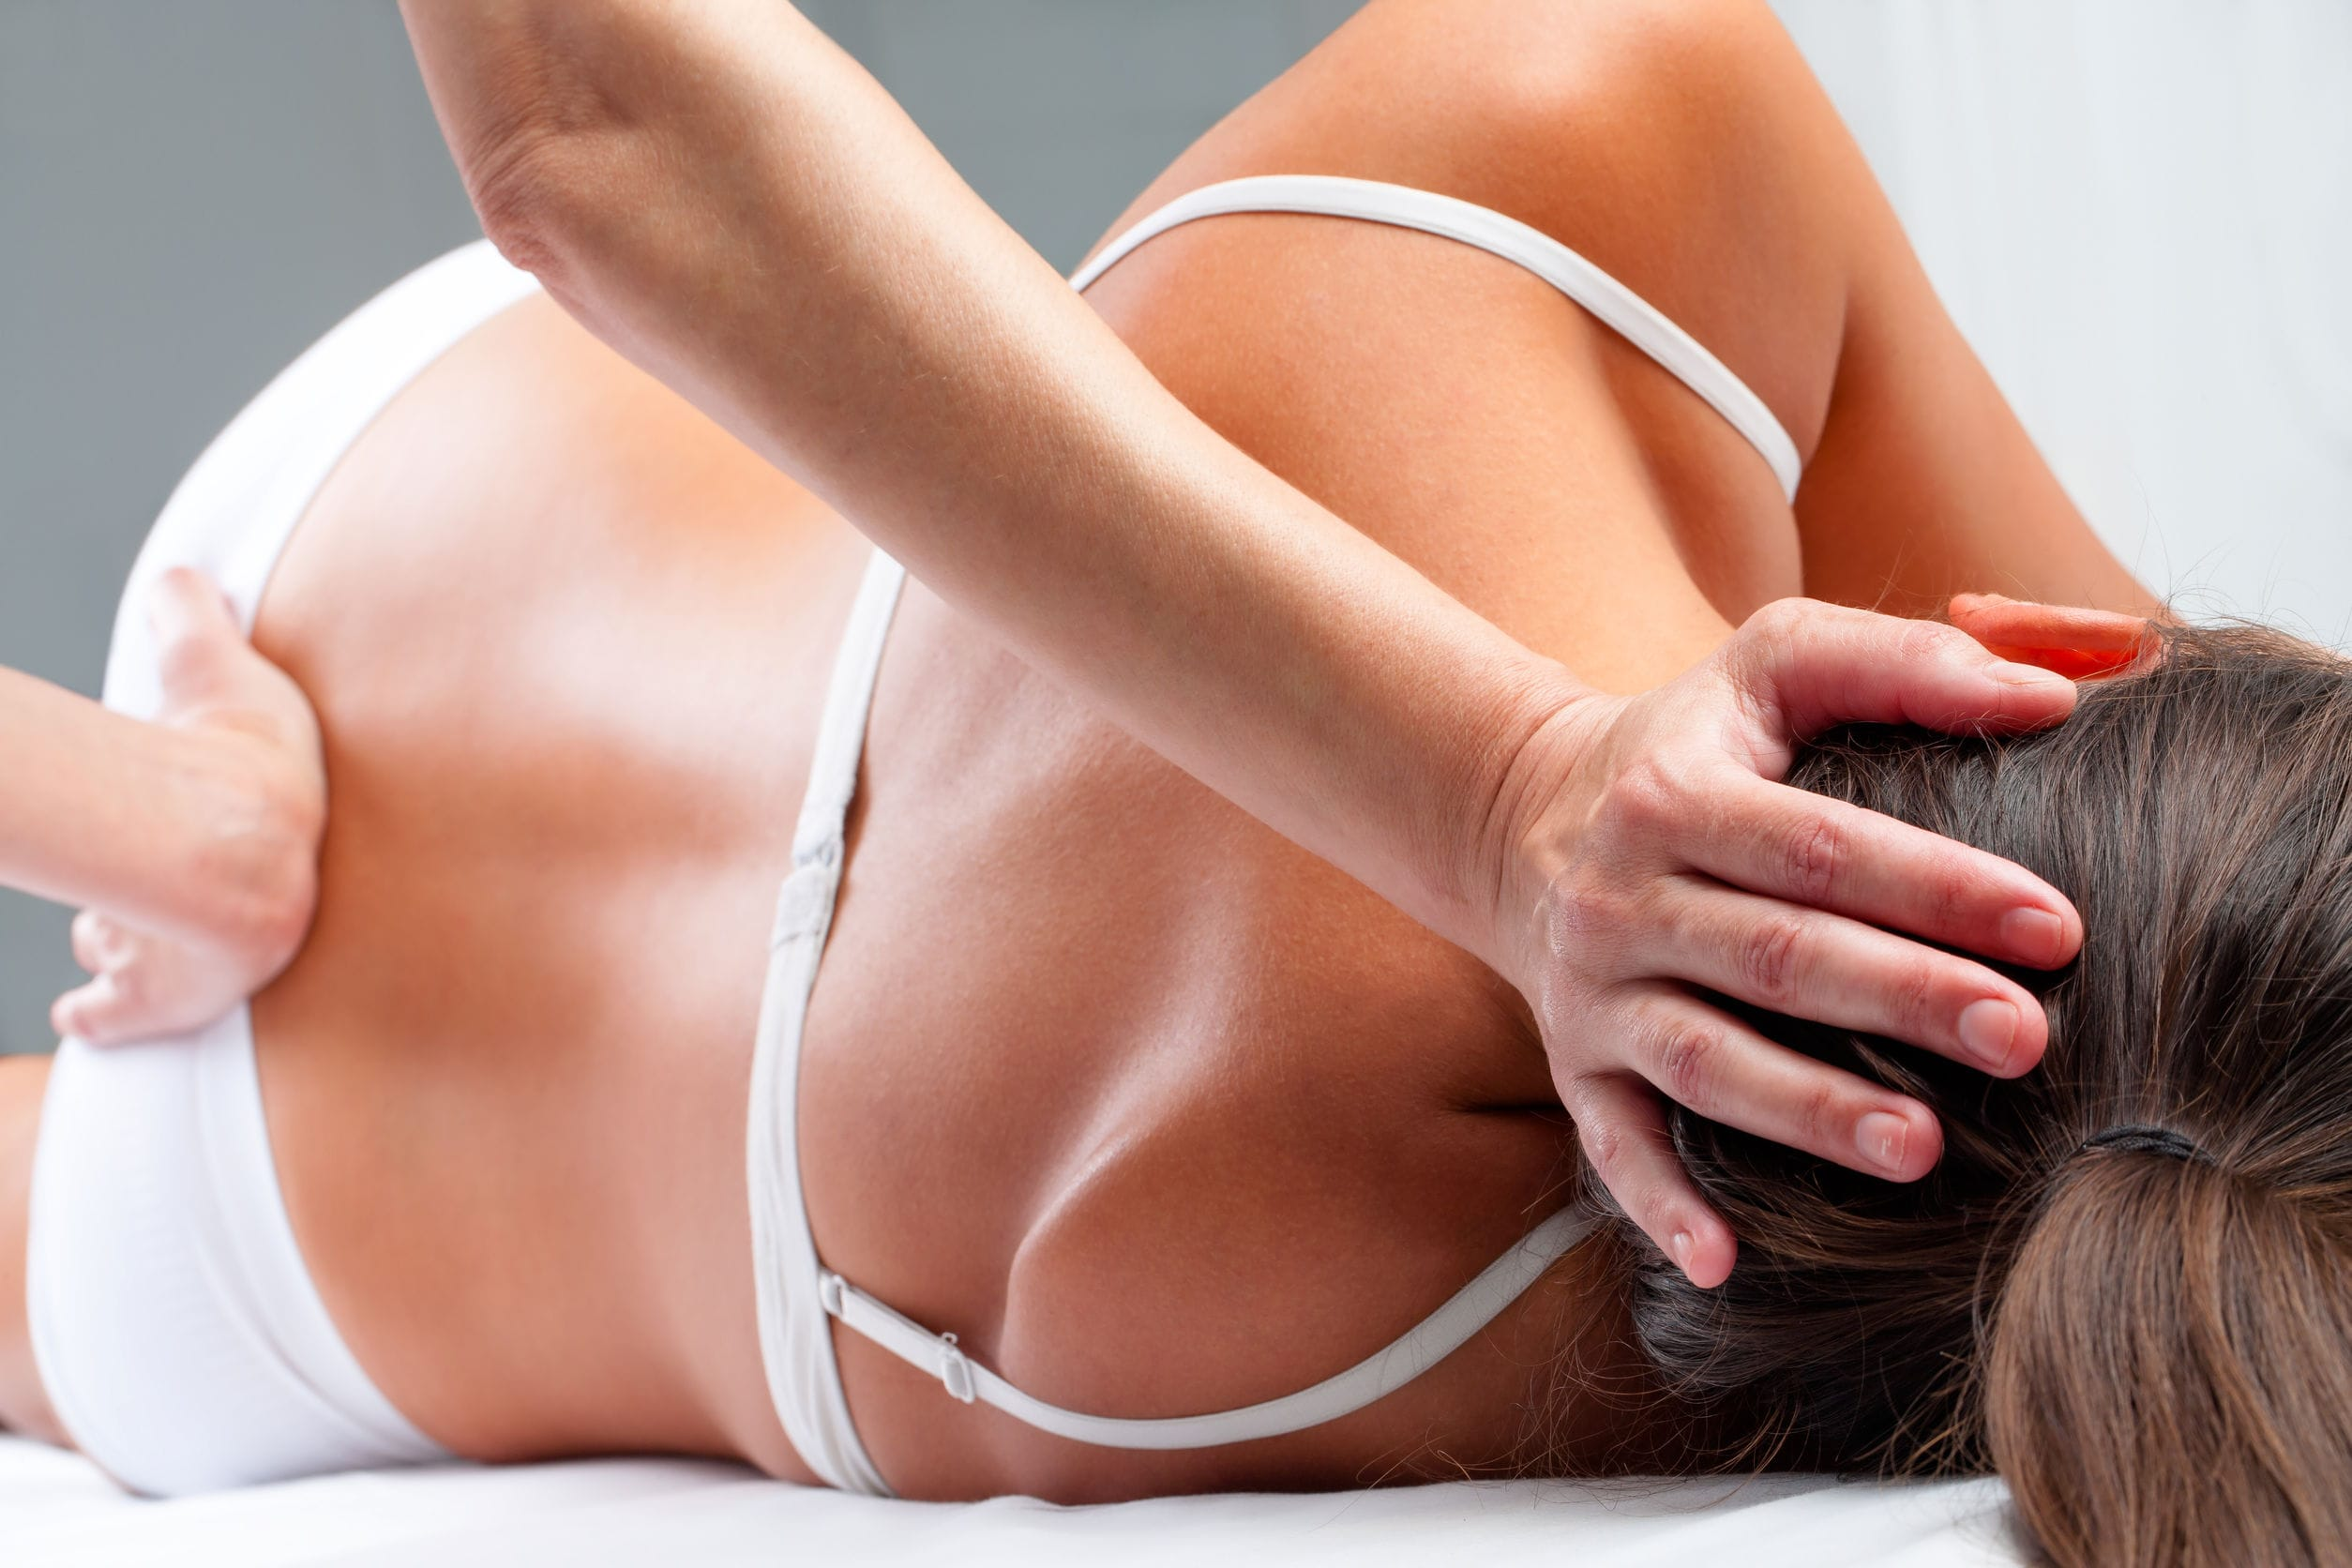 41985165 - close up of osteopath doing spinal column rehabilitation exercise on young woman.